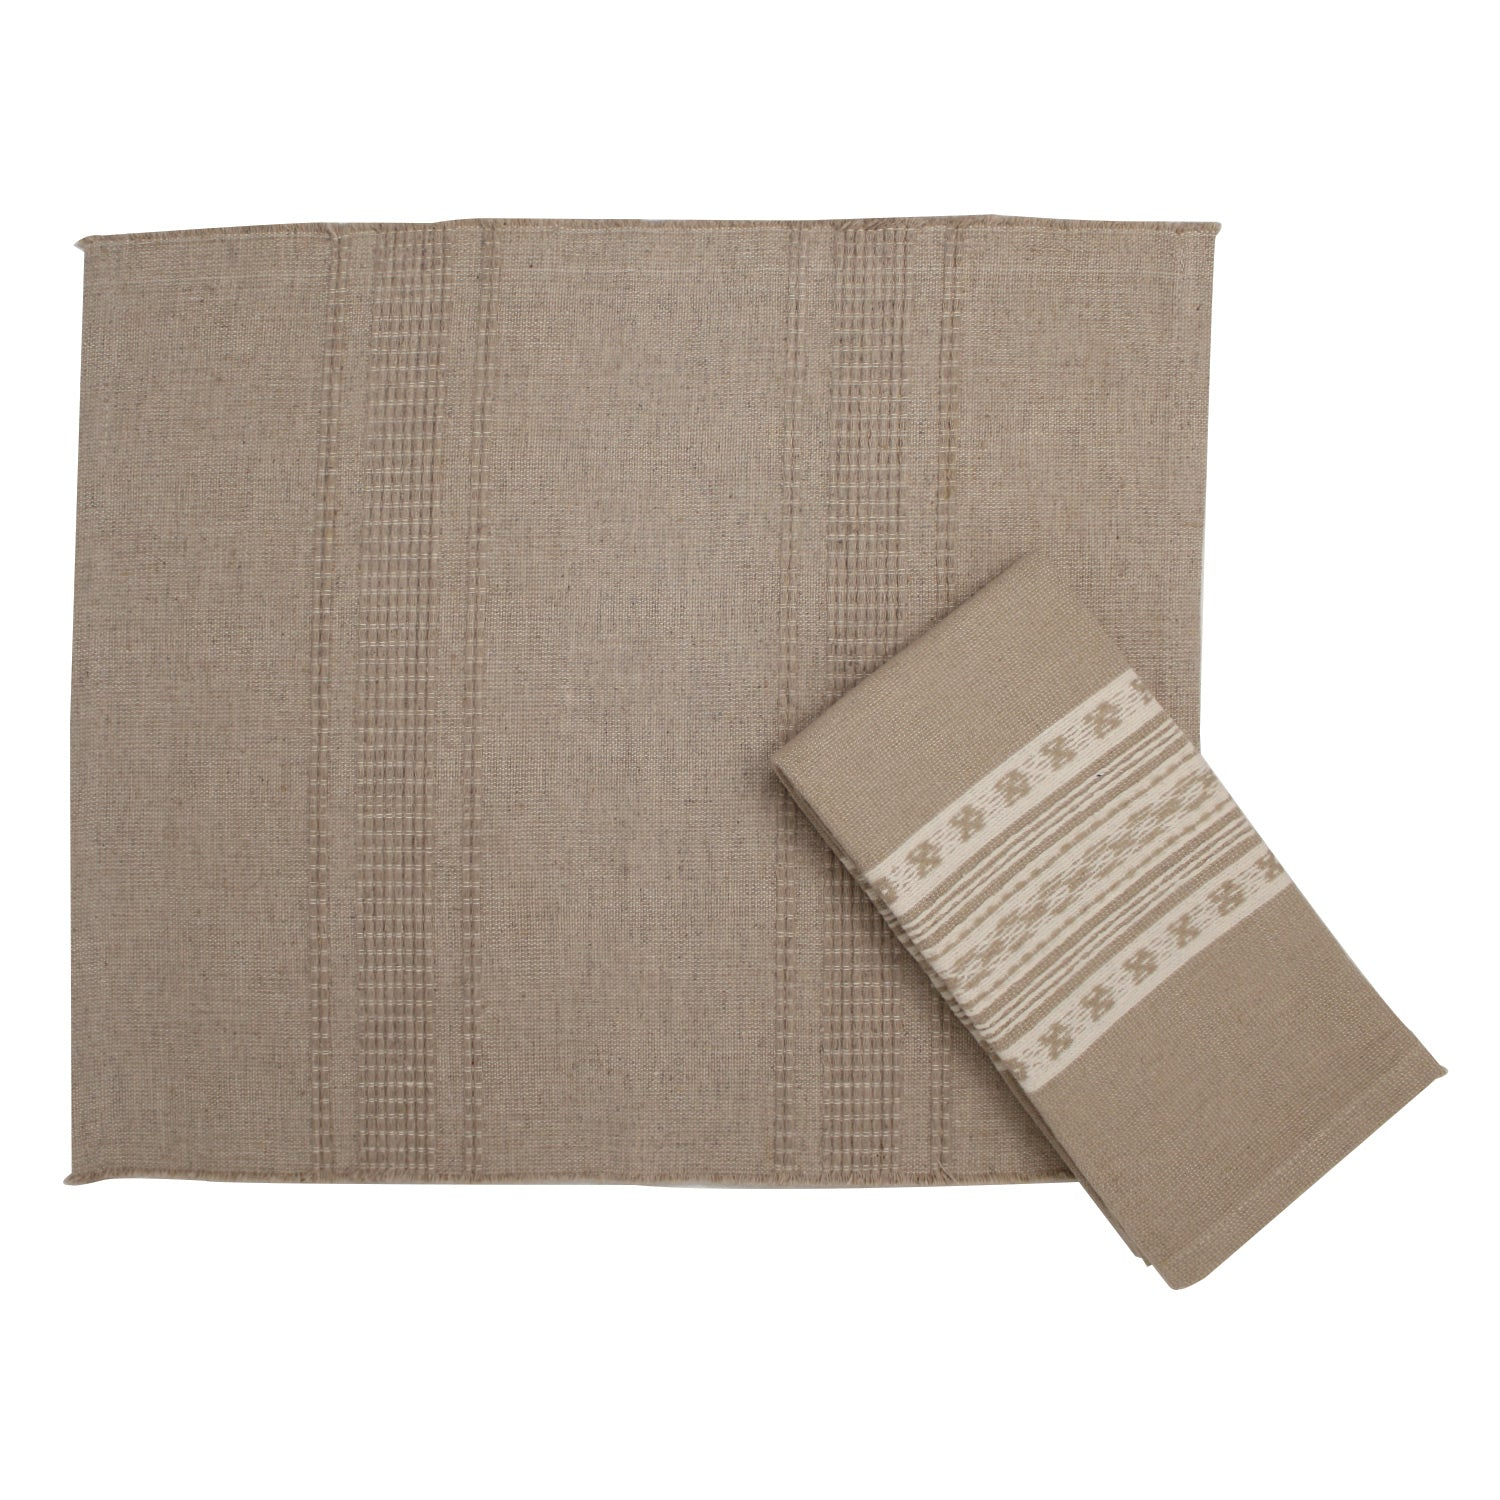 Jamil Handwoven Placemat - Oatmeal